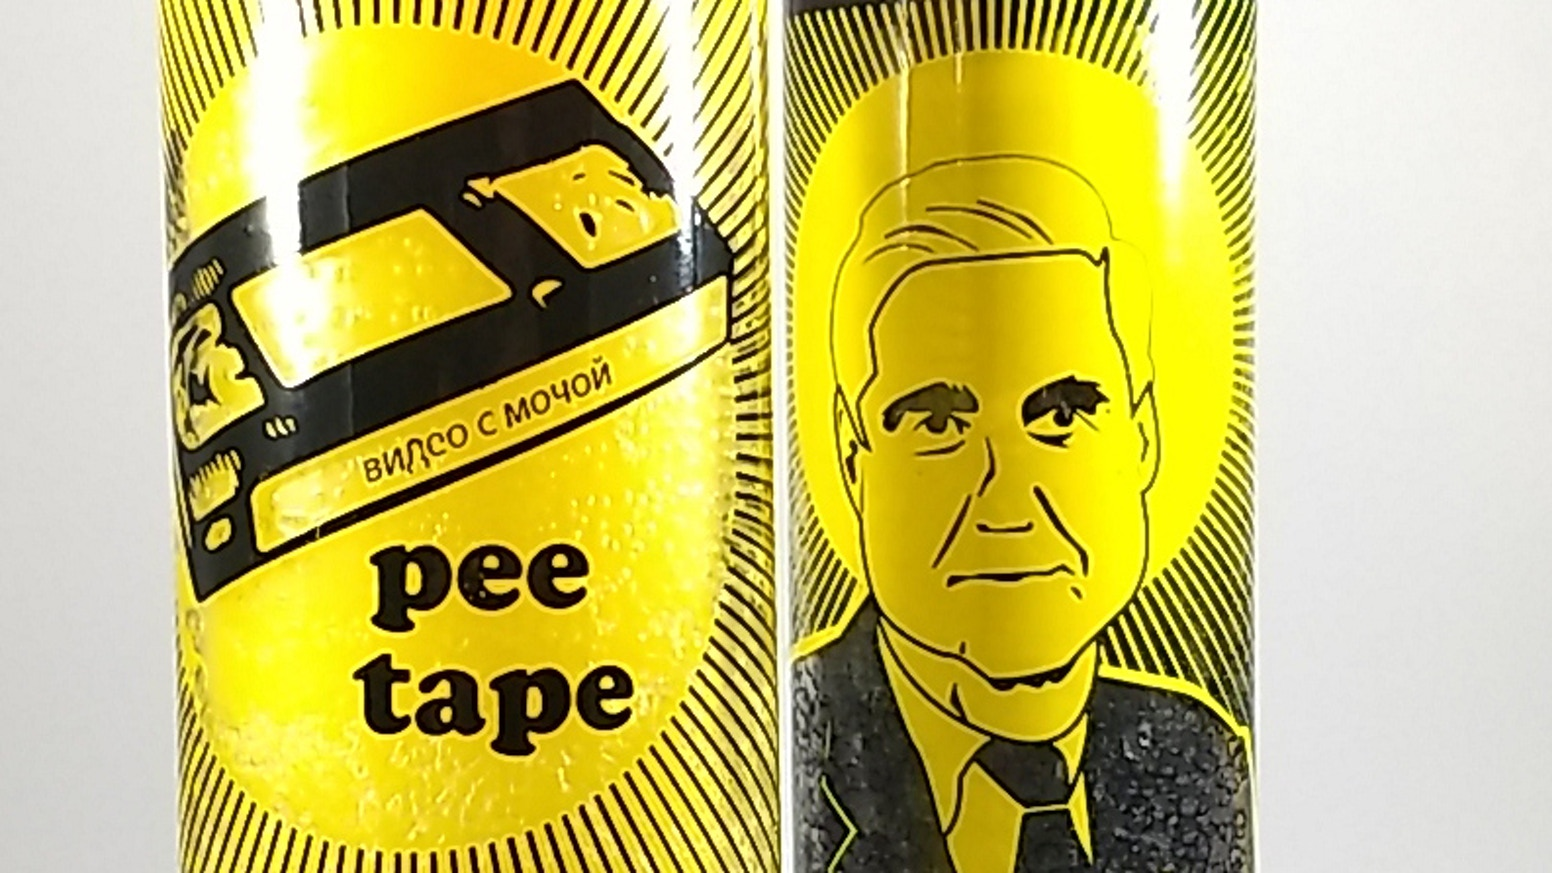 Pray for an end to the Trump administration with Pee Tape and Robert Mueller III Prayer Candles.